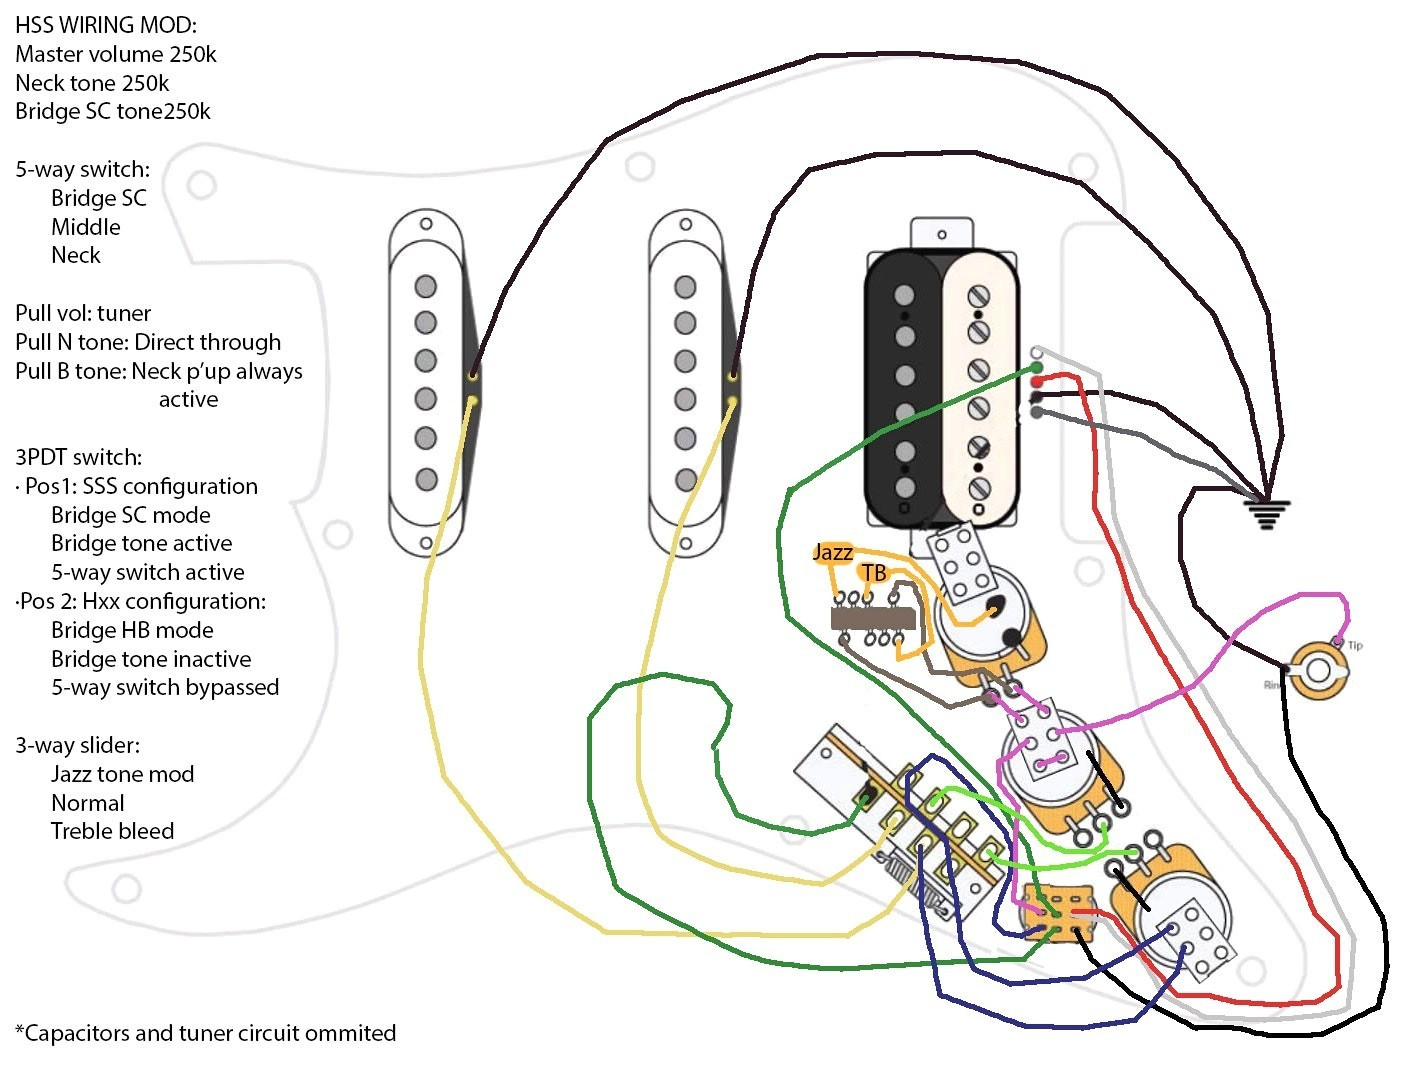 Fender Wiring Diagrams - Wiring Diagrams Hubs - Guitar Wiring Diagram 2 Humbucker 1 Volume 1 Tone